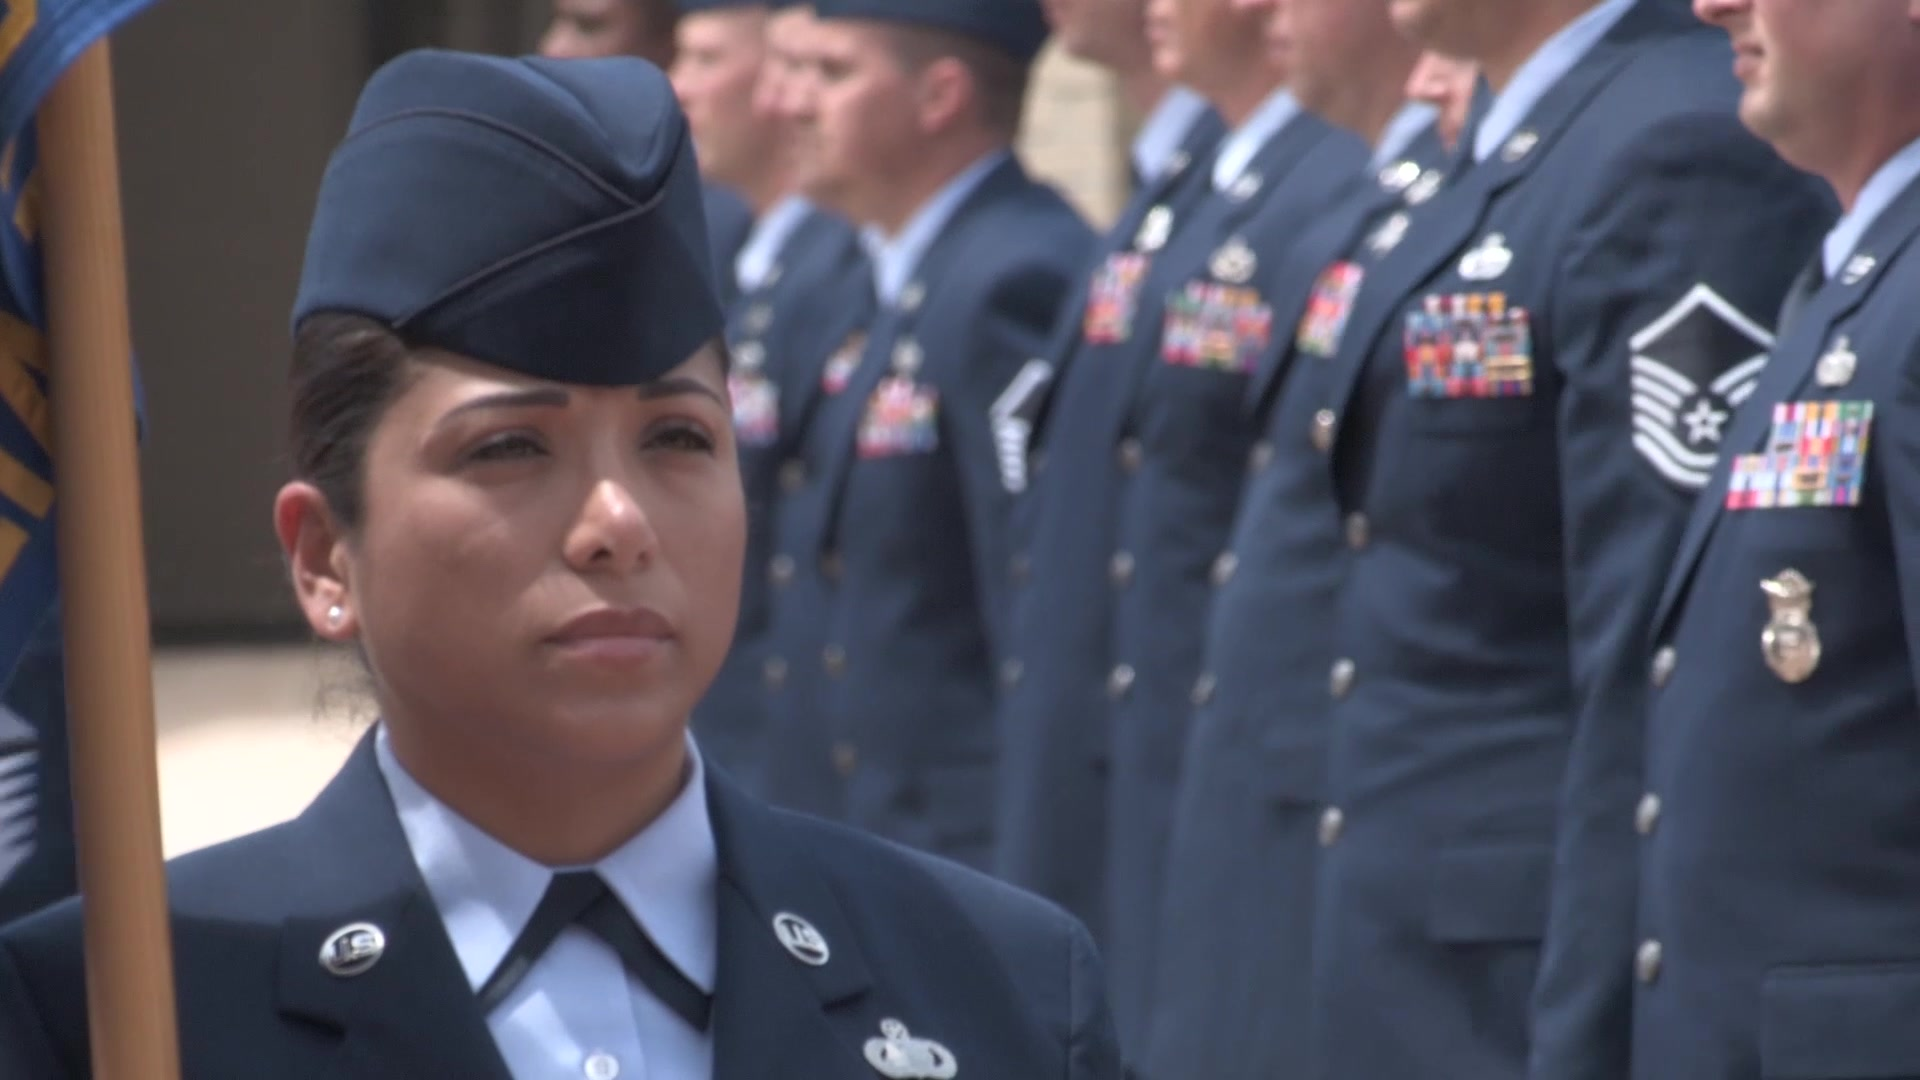 The Air Force Senior Noncommissioned Officer Academy (AFSNCOA) is the third level of enlisted PME. AFSNCOA prepares senior NCOs to lead the enlisted force in the employment of airpower in support of US national security objectives. This video highlights aspects of the course, and shows teamwork between sister service and international partners.